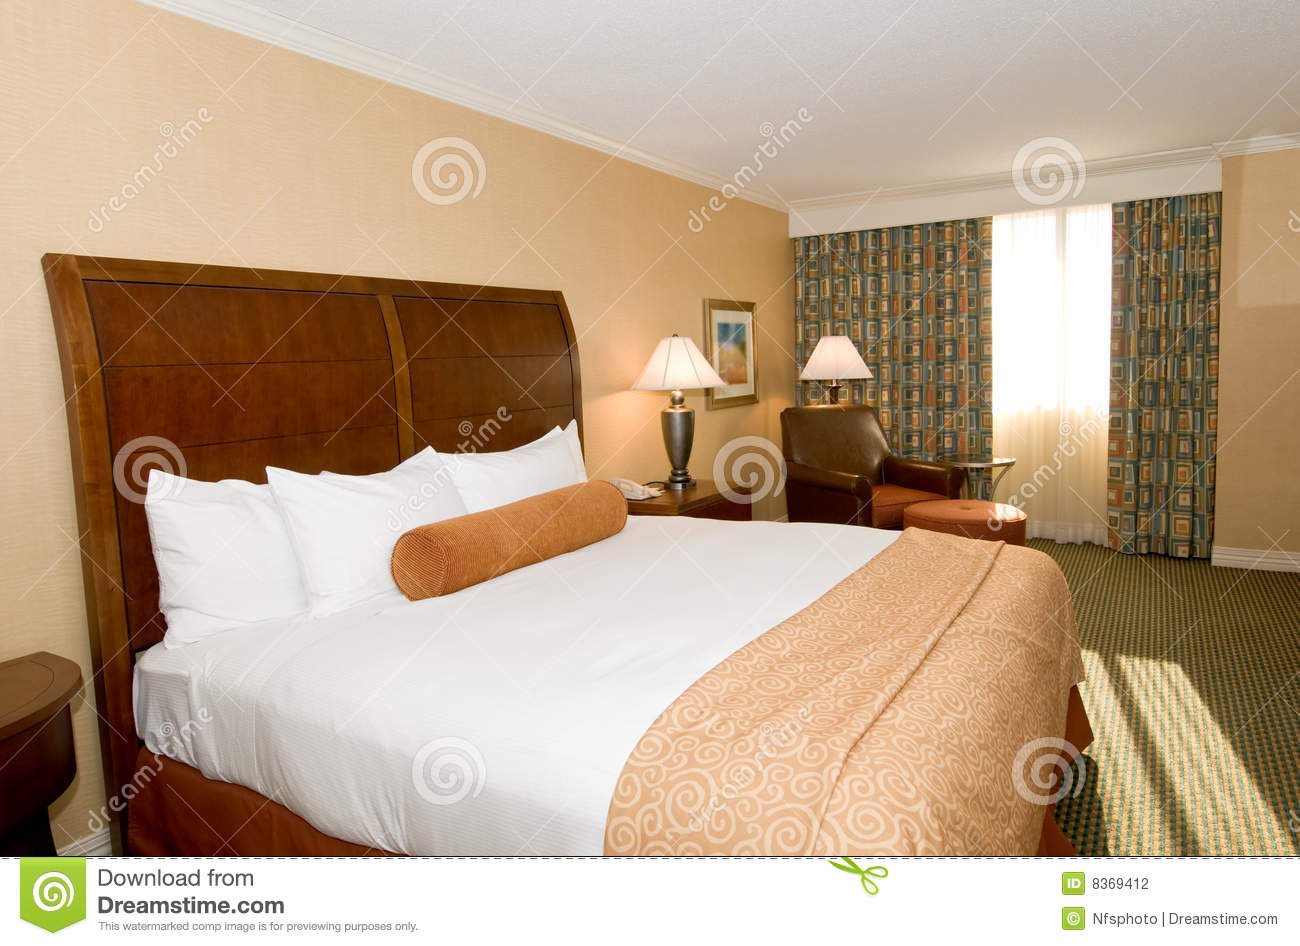 Hotel Room With Queen Bed Stock Photo Image Of Interior